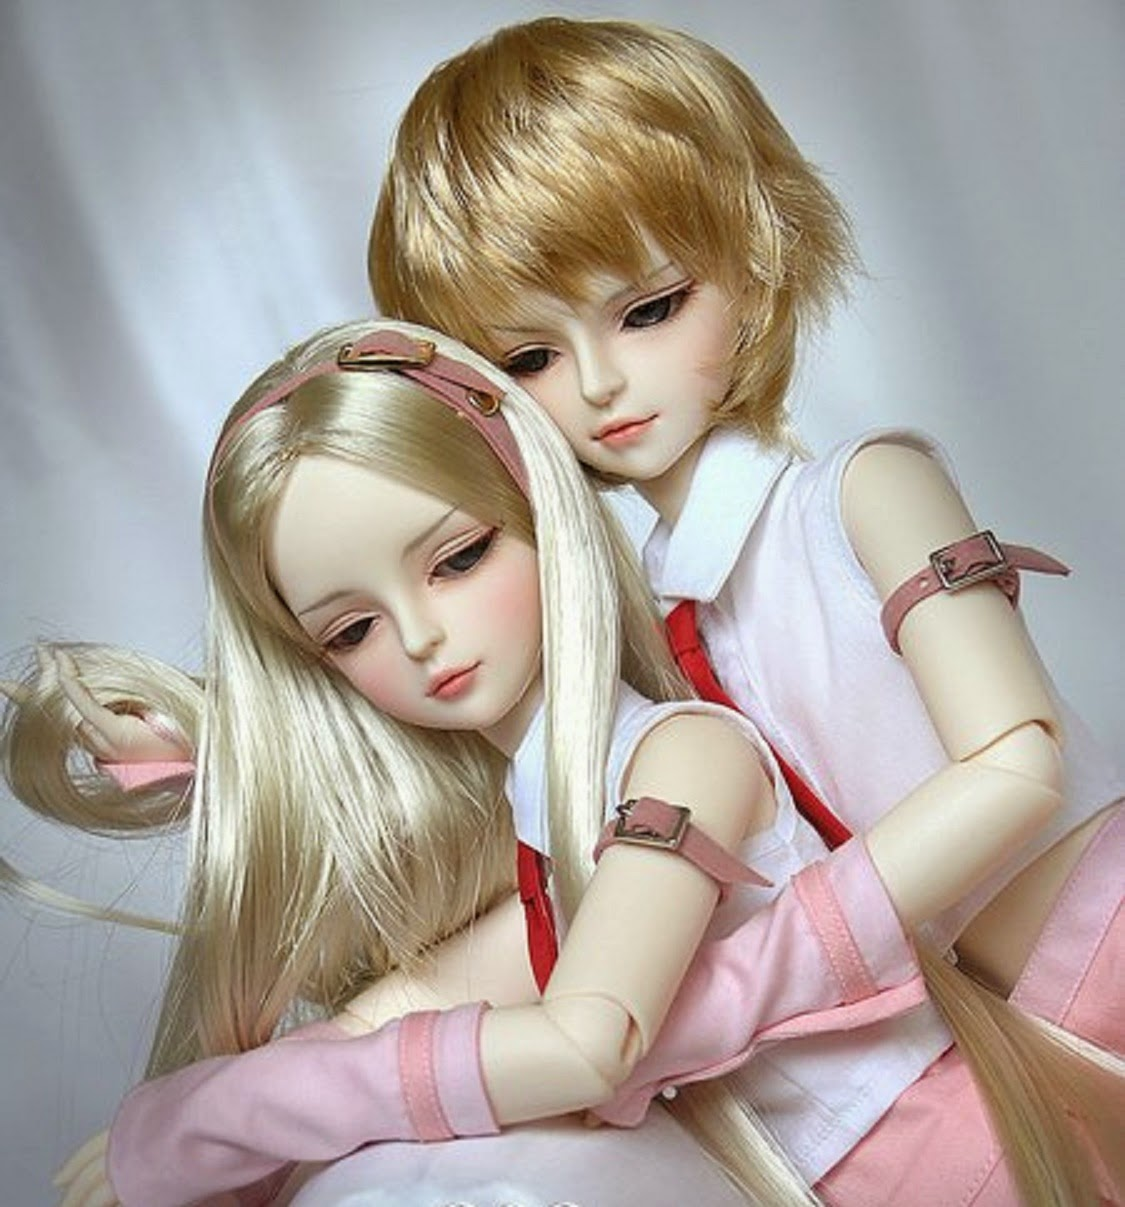 Most Beautiful Dolls Wallpapers free download